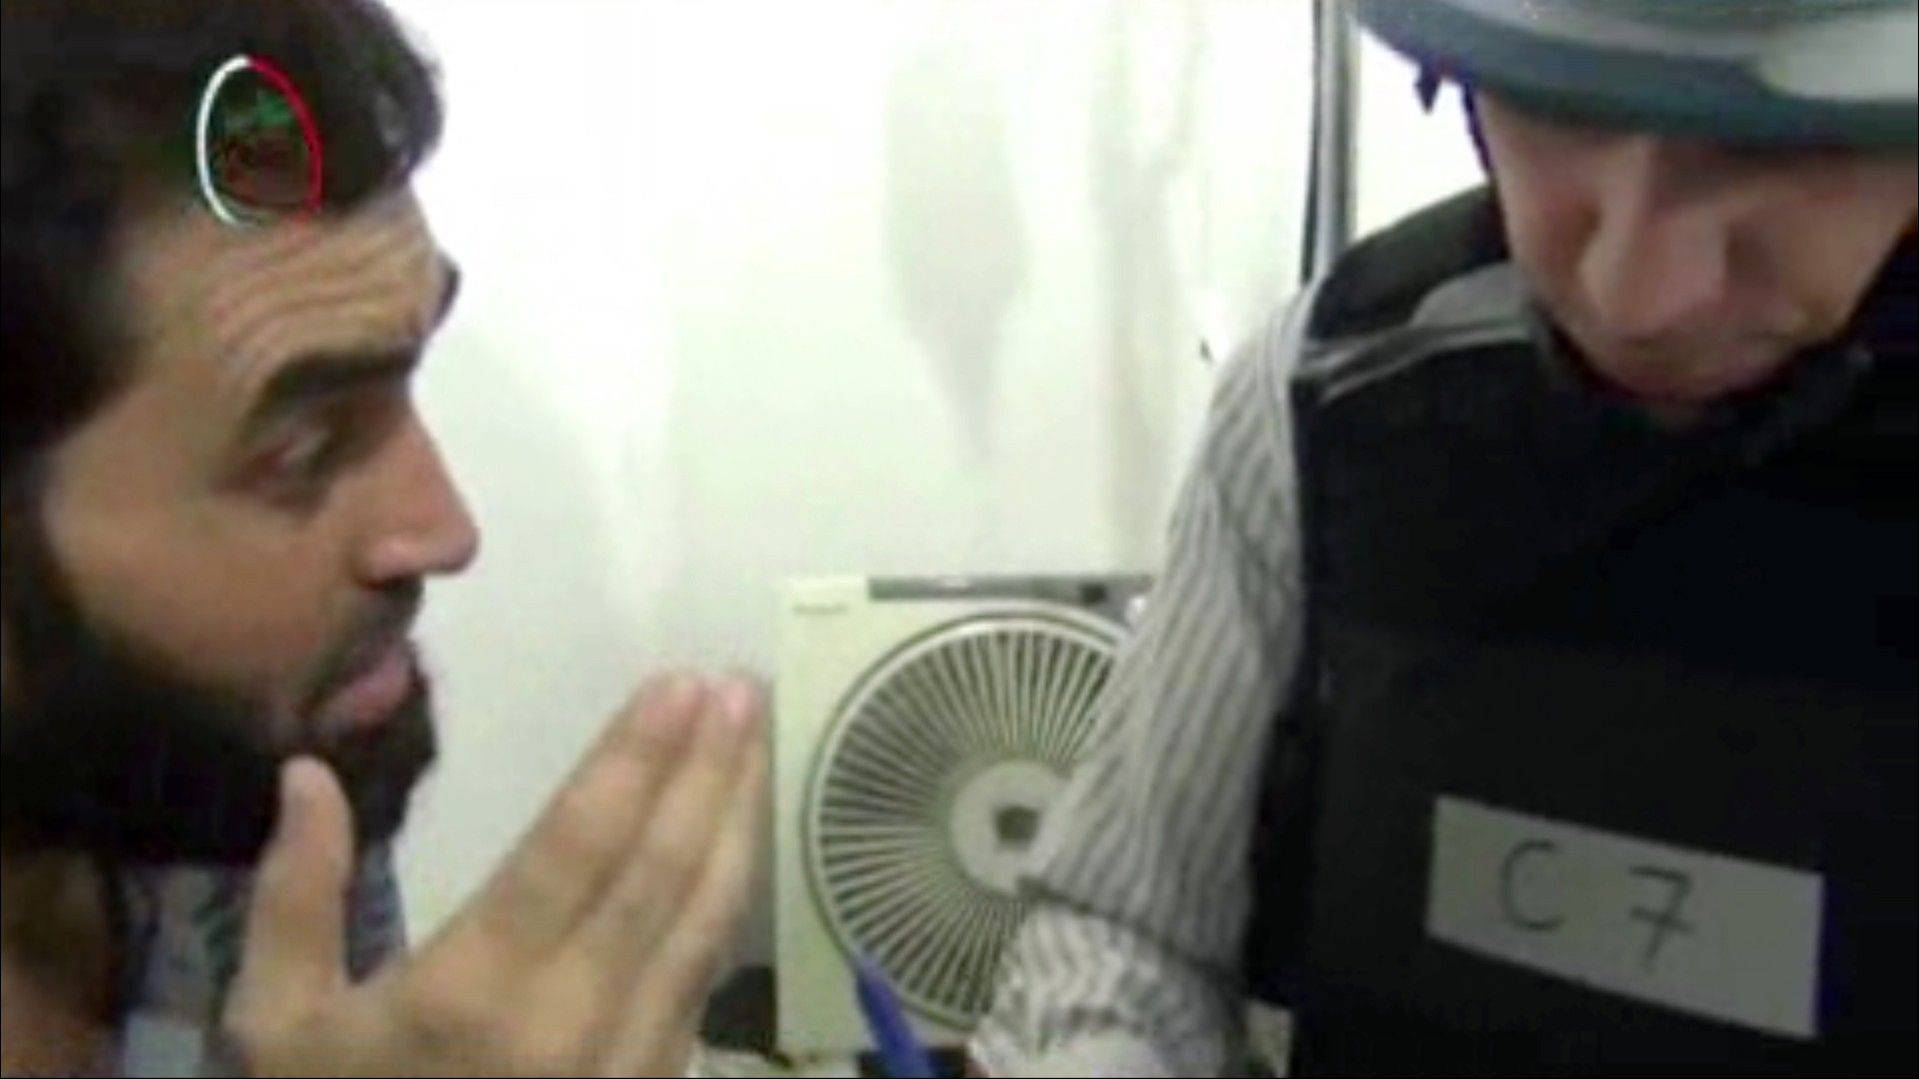 This undated image taken from amateur video footage provided by the Media Office Of Moadamiyeh purports to show a U.N. inspector, right, speaking to a man about the alleged chemical weapon attack as a U.N. inspection team visits a makeshift hospital in Moadamiyeh, a suburb of the Syrian capital of Damascus. Doctors Without Borders said 355 people were killed in an artillery barrage by regime forces on Wednesday that included the use of toxic gas. The media office of Moadamiyeh is a loosely organized Anti-Assad activist group based in Moadamieyh which posts video and still images of violence and other developments from the region. The Associated Press cannot absolutely certify the content, date, location or authenticity of this image.